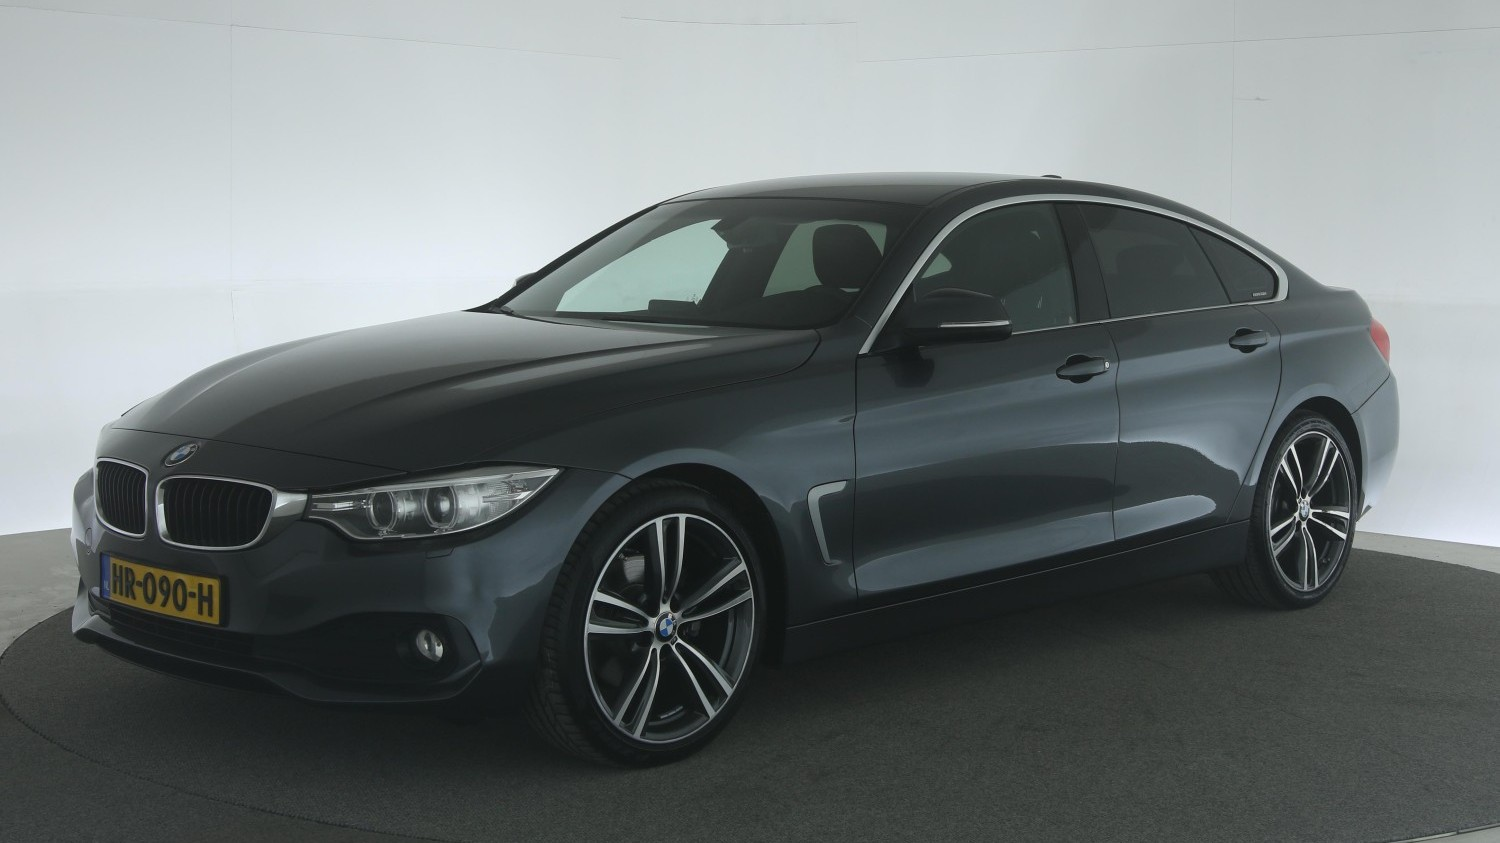 BMW 4-serie Hatchback 2015 HR-090-H 1